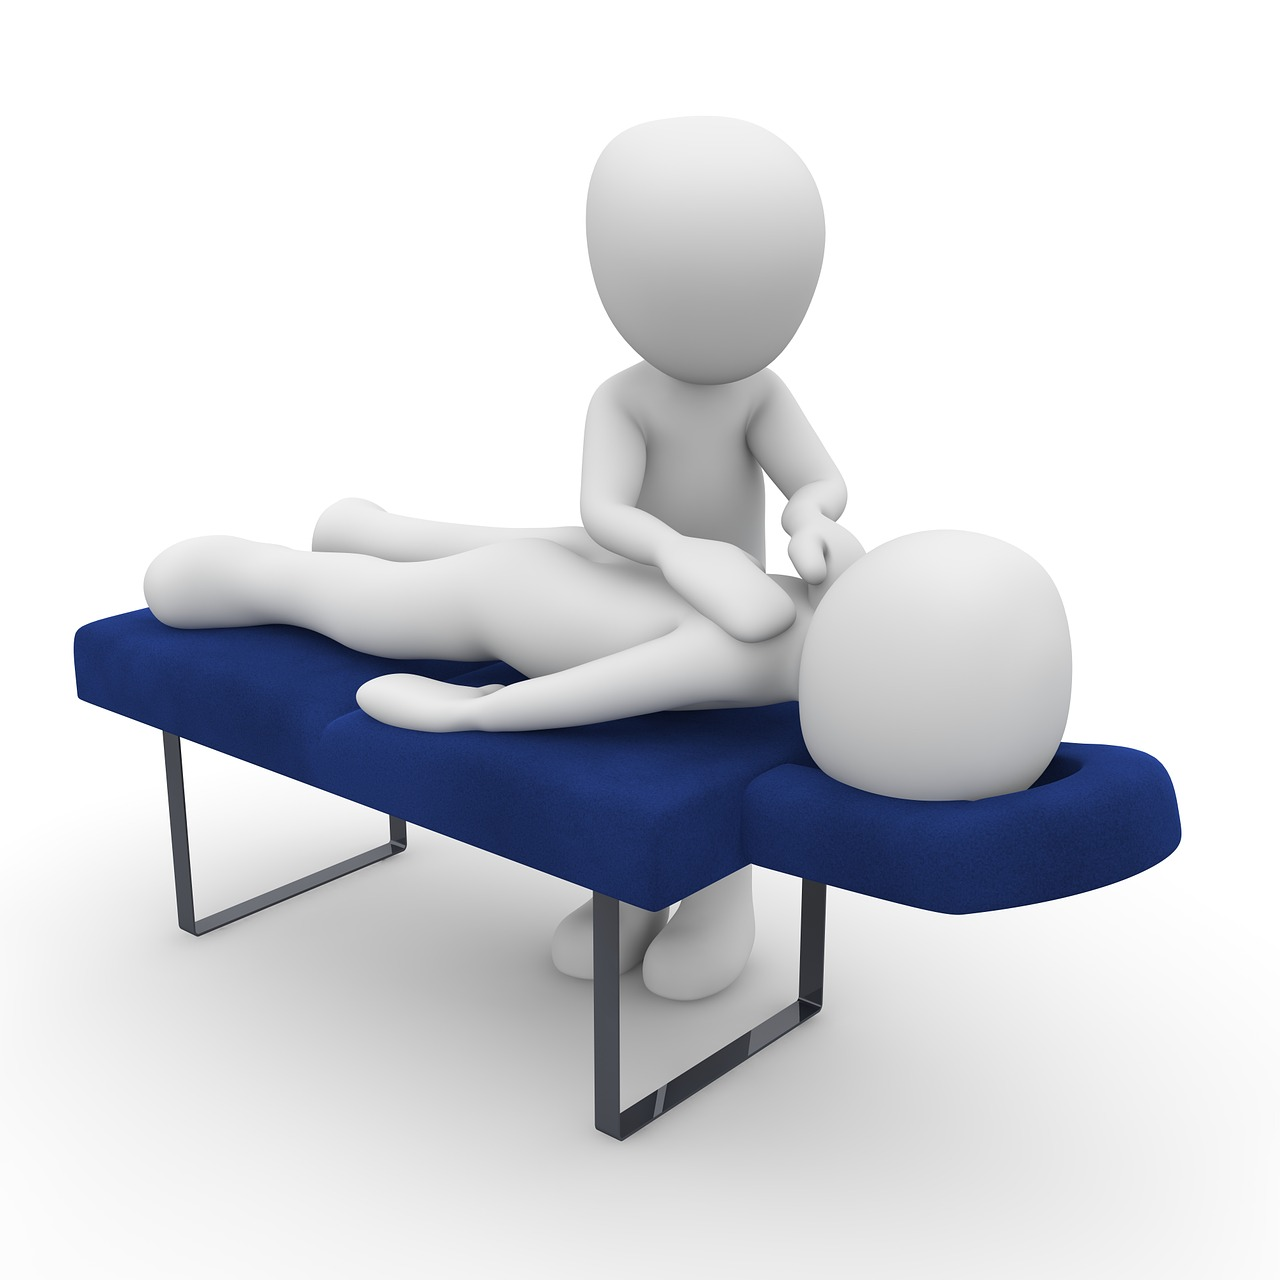 Massage Therapy Relax Health  - Peggy_Marco / Pixabay